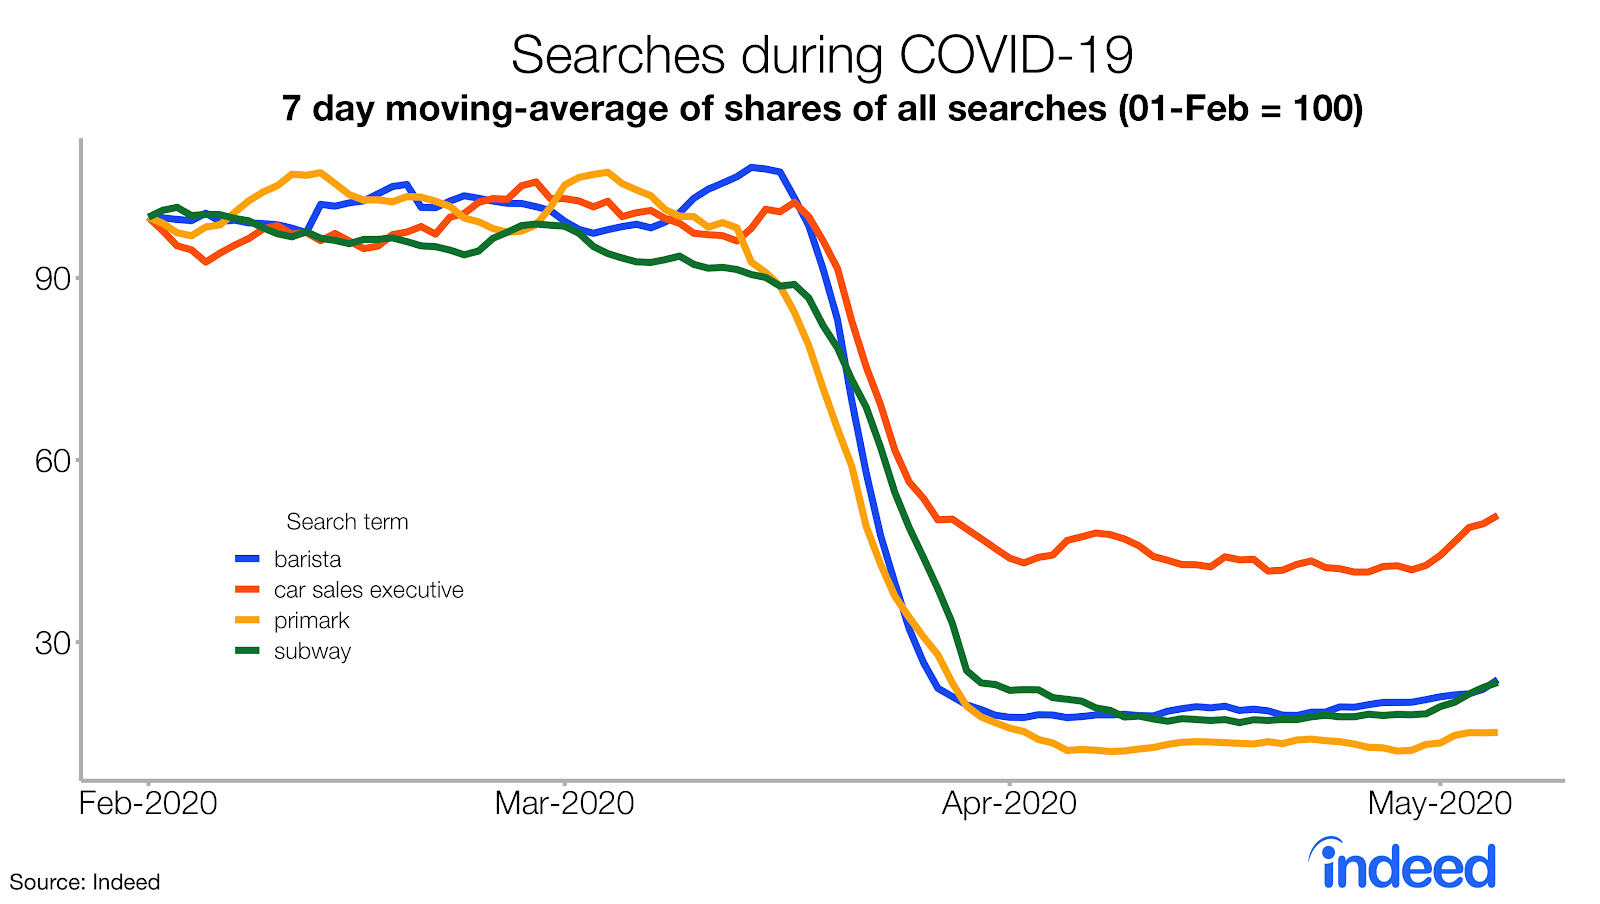 searches during COVID-19